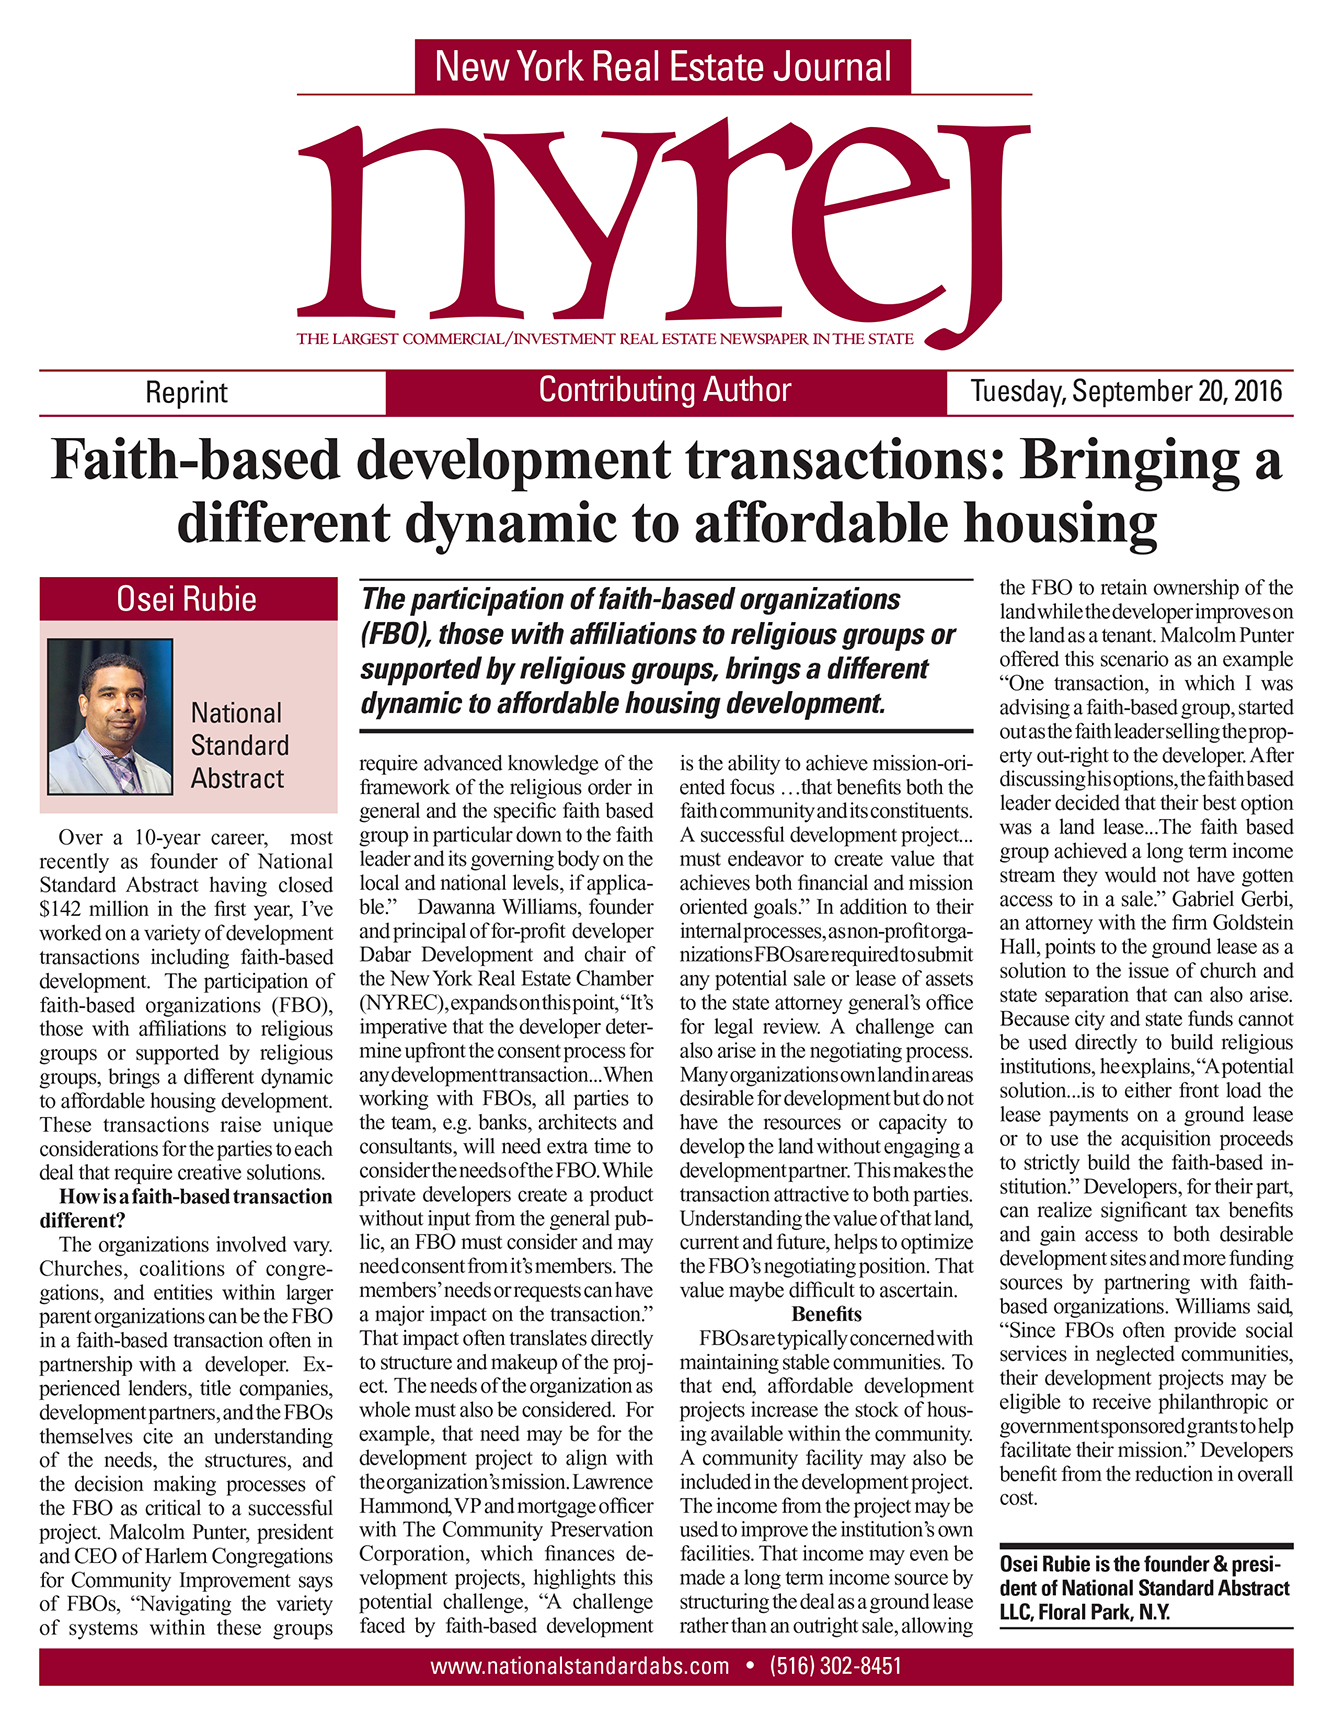 Faith Based Development Article 2016-1.jpg